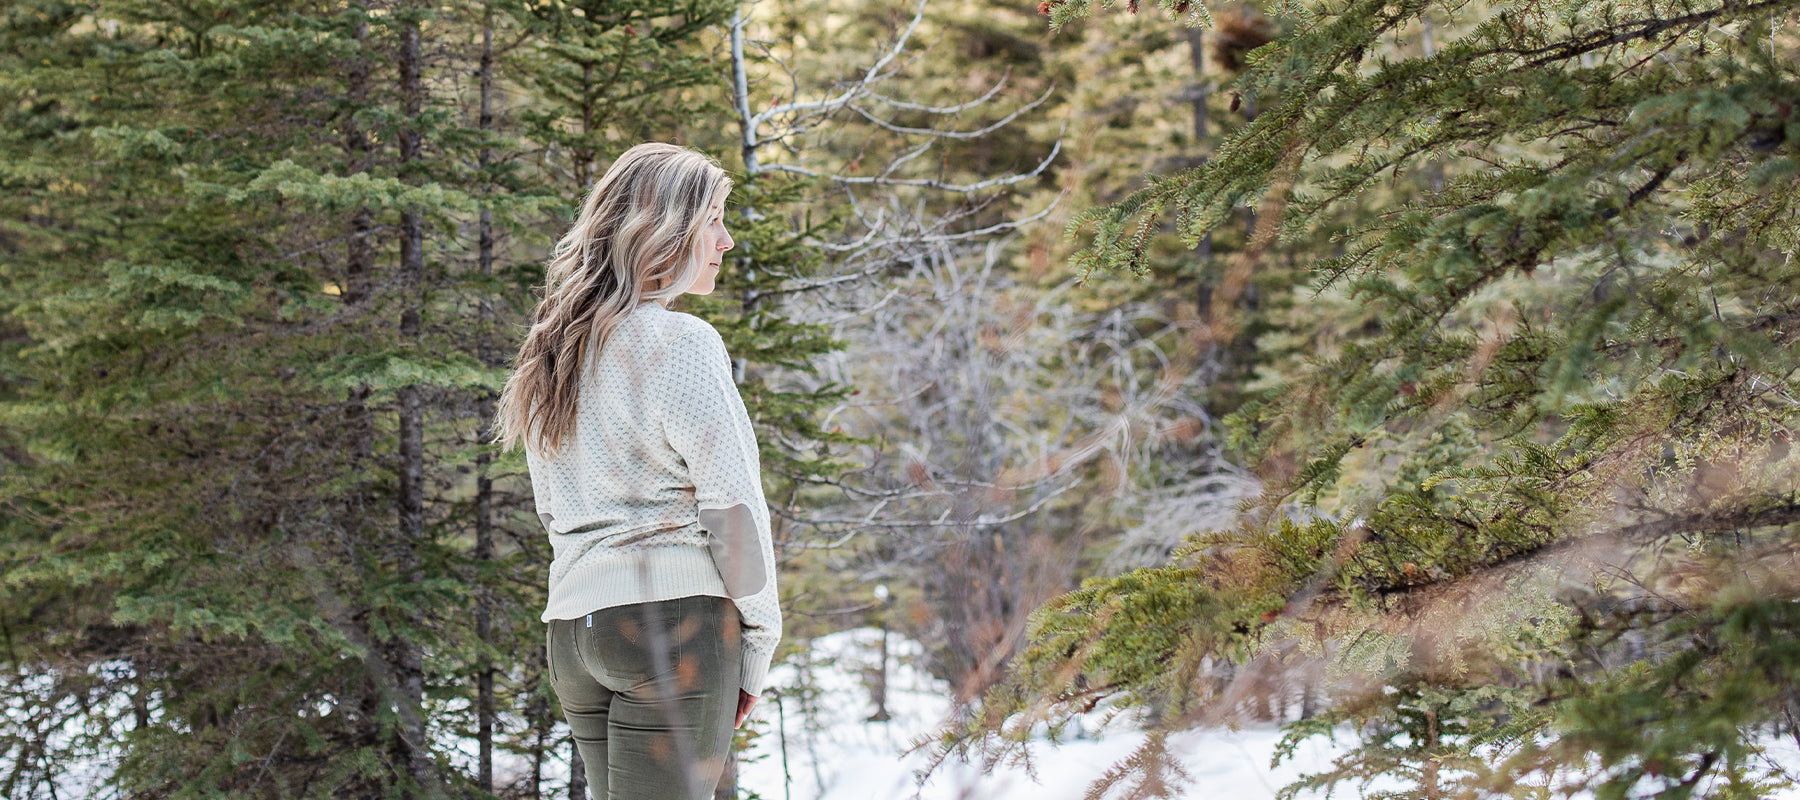 Forest Bathing - something to add to your self-care routine